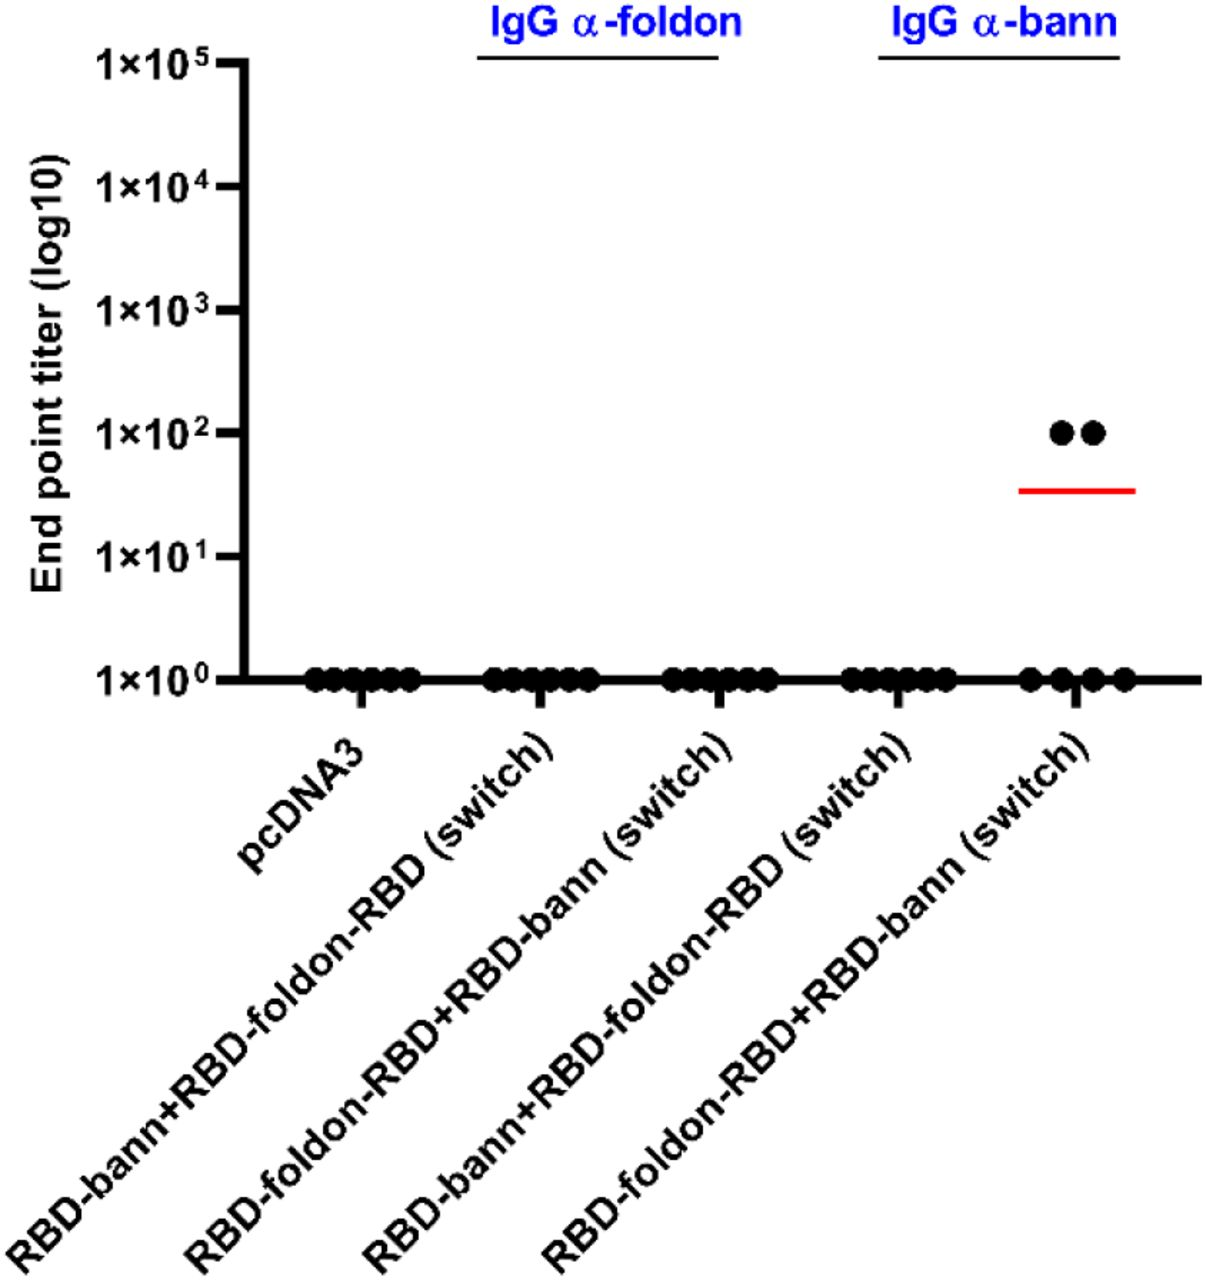 Total IgG against scaffold in mice that underwent switch immunization. Mice were immunized with combinations of differently scaffolded RBD plasmid DNA (β-annulus and foldon) for prime and boost immunization and vice versa. Titers of antibodies against scaffold (depicted in blue) after prime and boost were determined via ELISA. Graphs represent mean of EPT of group of mice (n=6 per group). Each dot represents an individual animal.